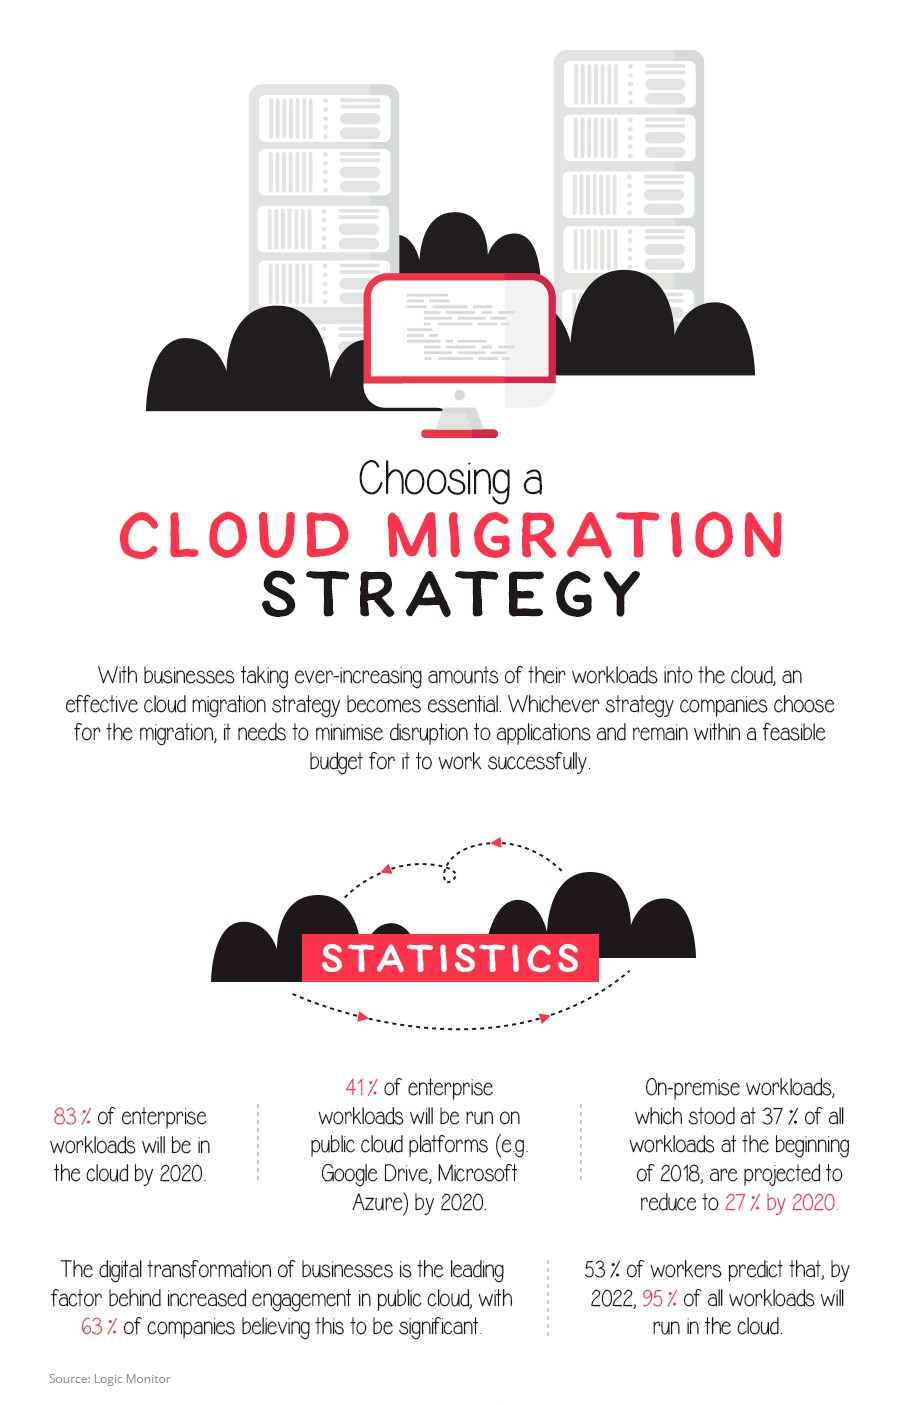 However, when it comes to starting a cloud migration, organizations have a hard time deciding what is best for them, what's the difference between multiple cloud strategies, and what is the most effective one. Fortunately, ERS IT SOLUTIONS answered all these questions in the infographic below.